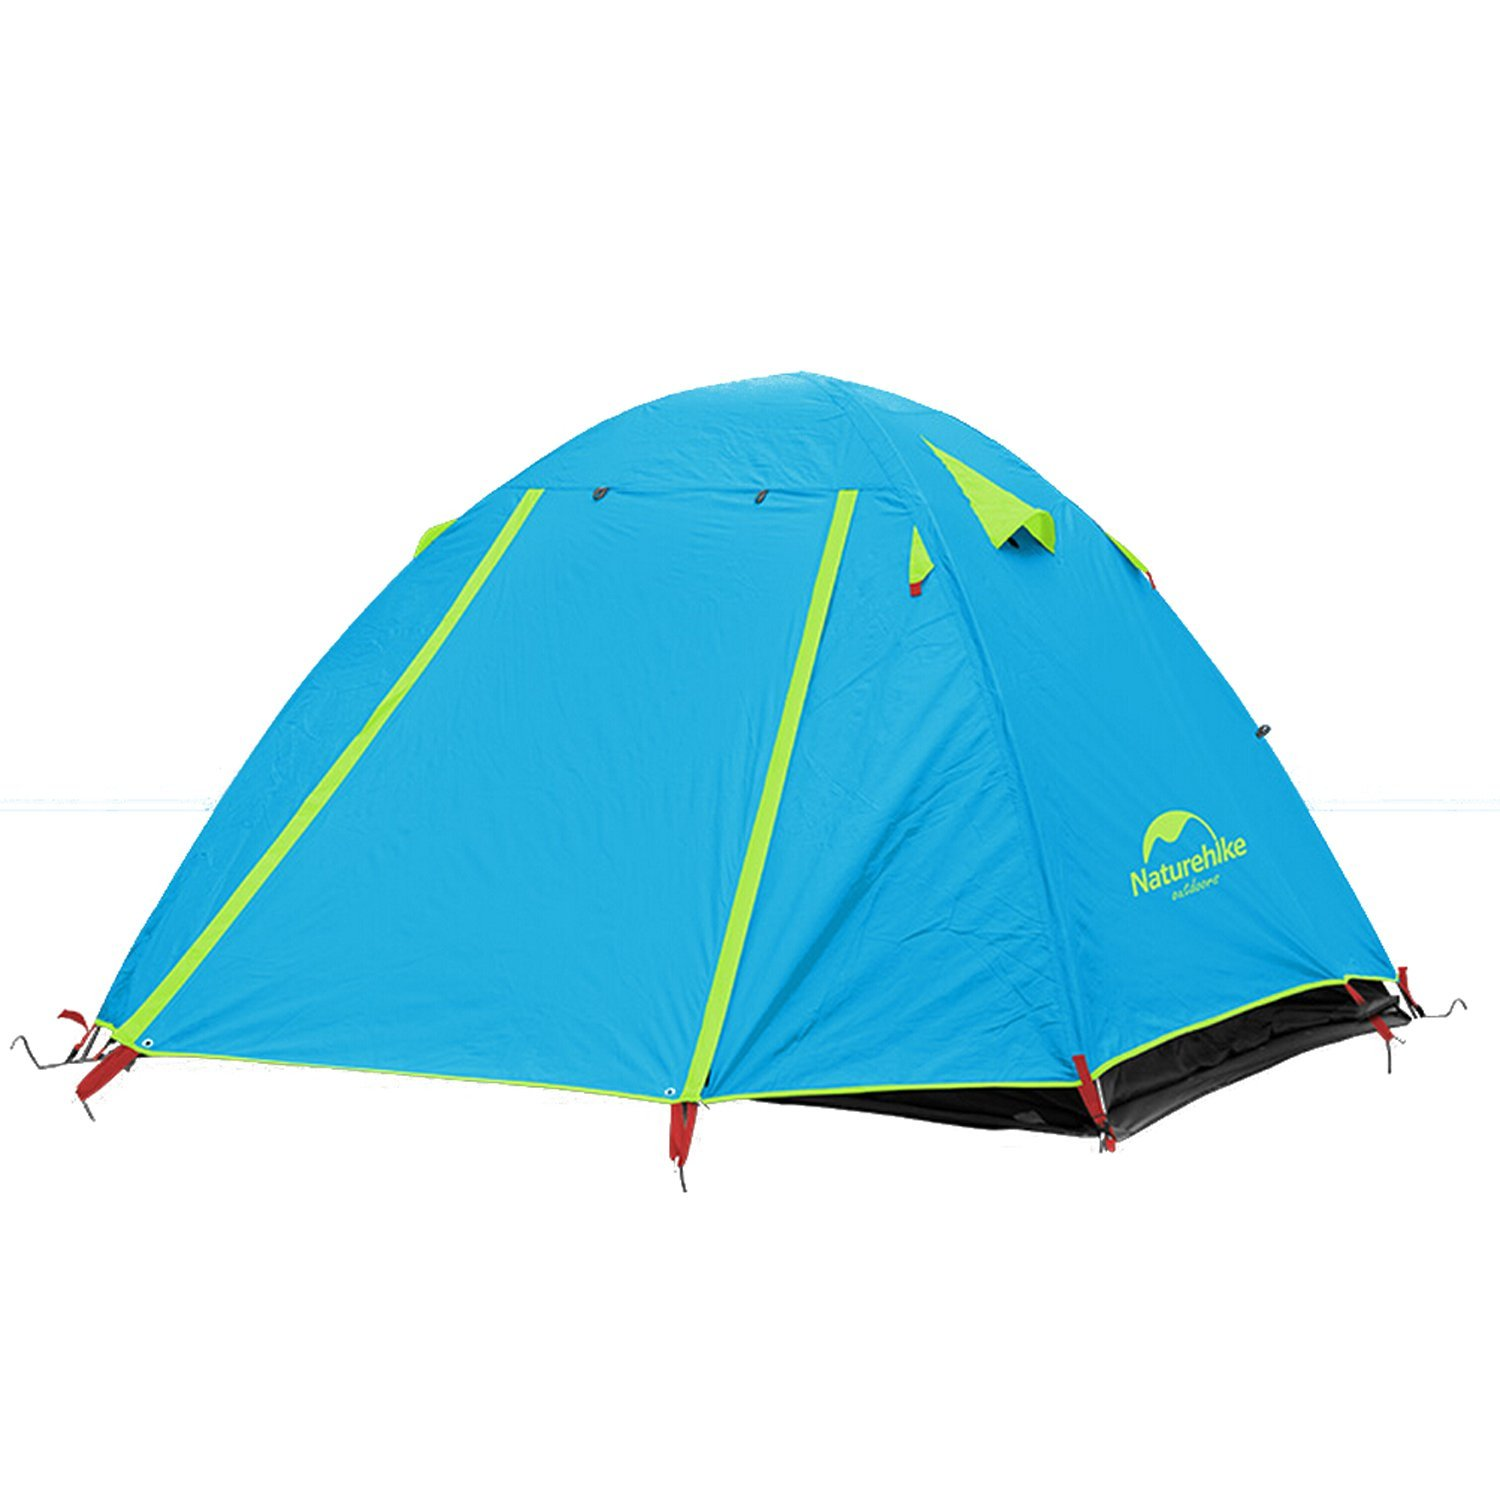 Weanas Double Layer Tent  sc 1 st  Koiyaki Guiding School & Best Family Tent For Camping in 2018 - KOIYAKI.COM